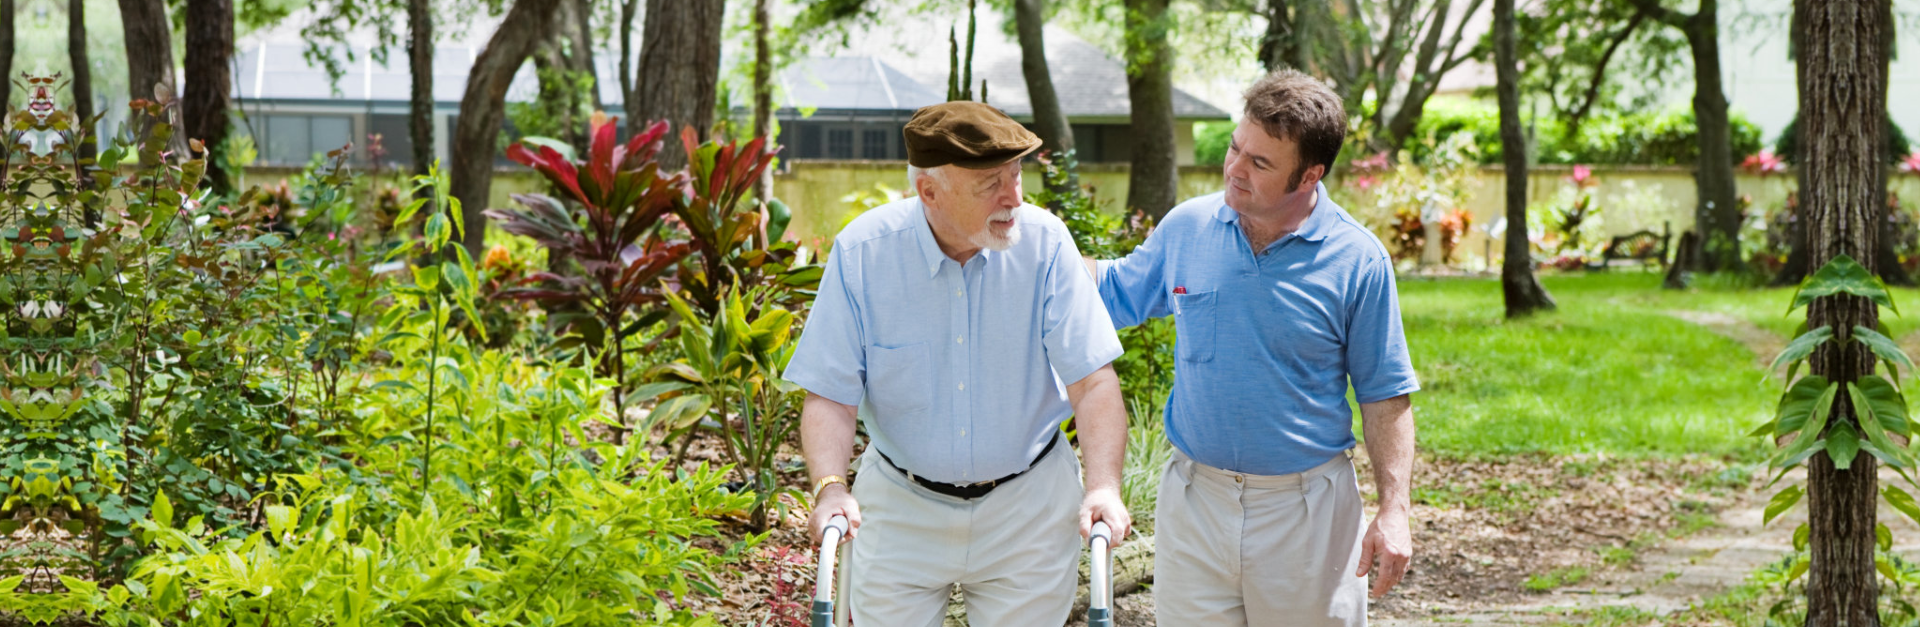 Caregiver and elder walking in the garden